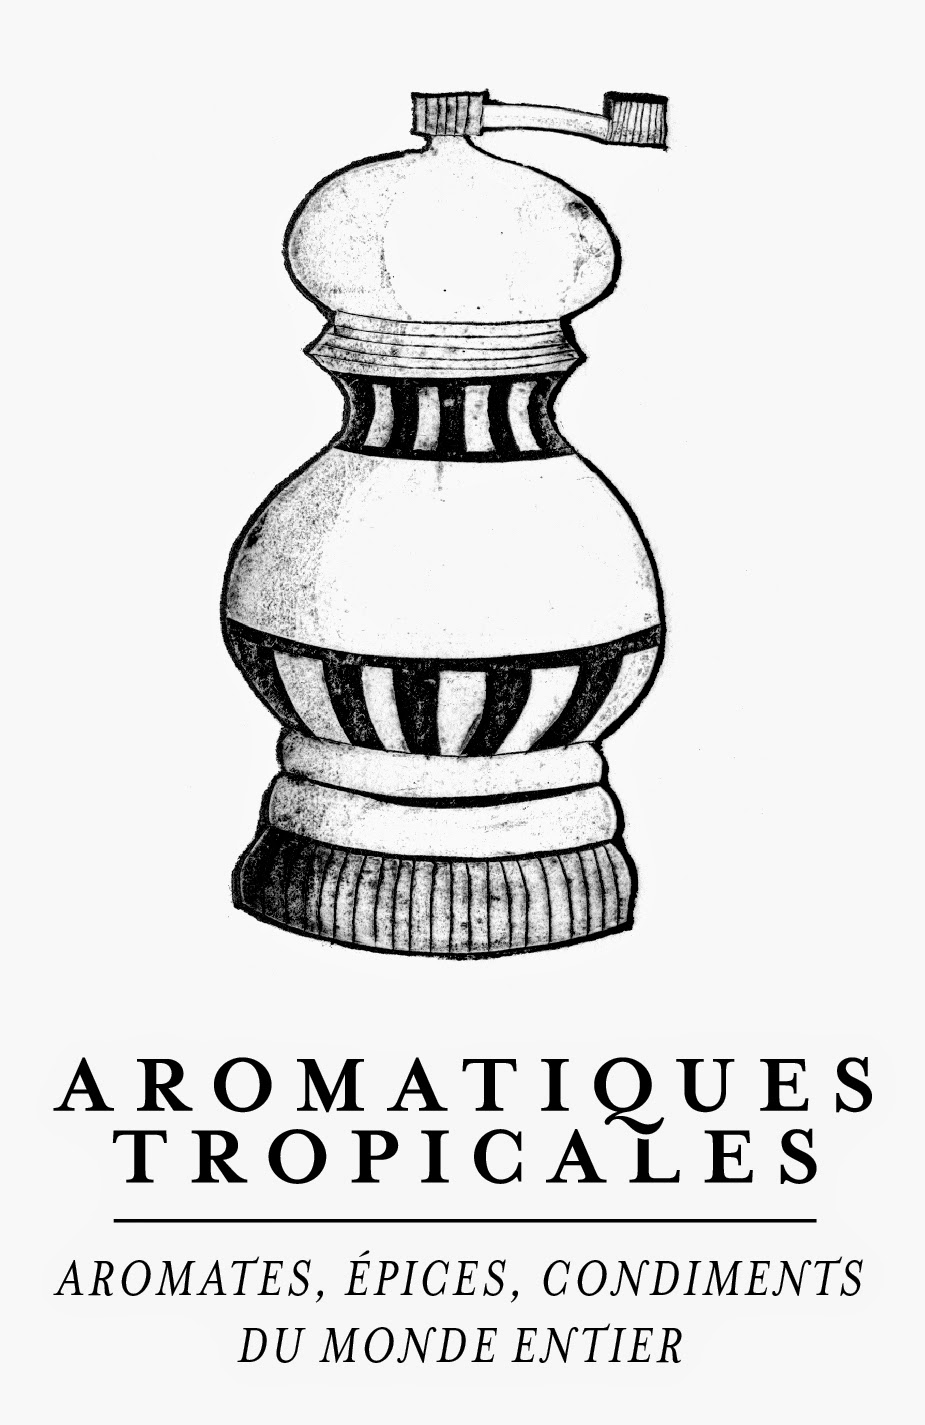 http://www.aromatiques.com/